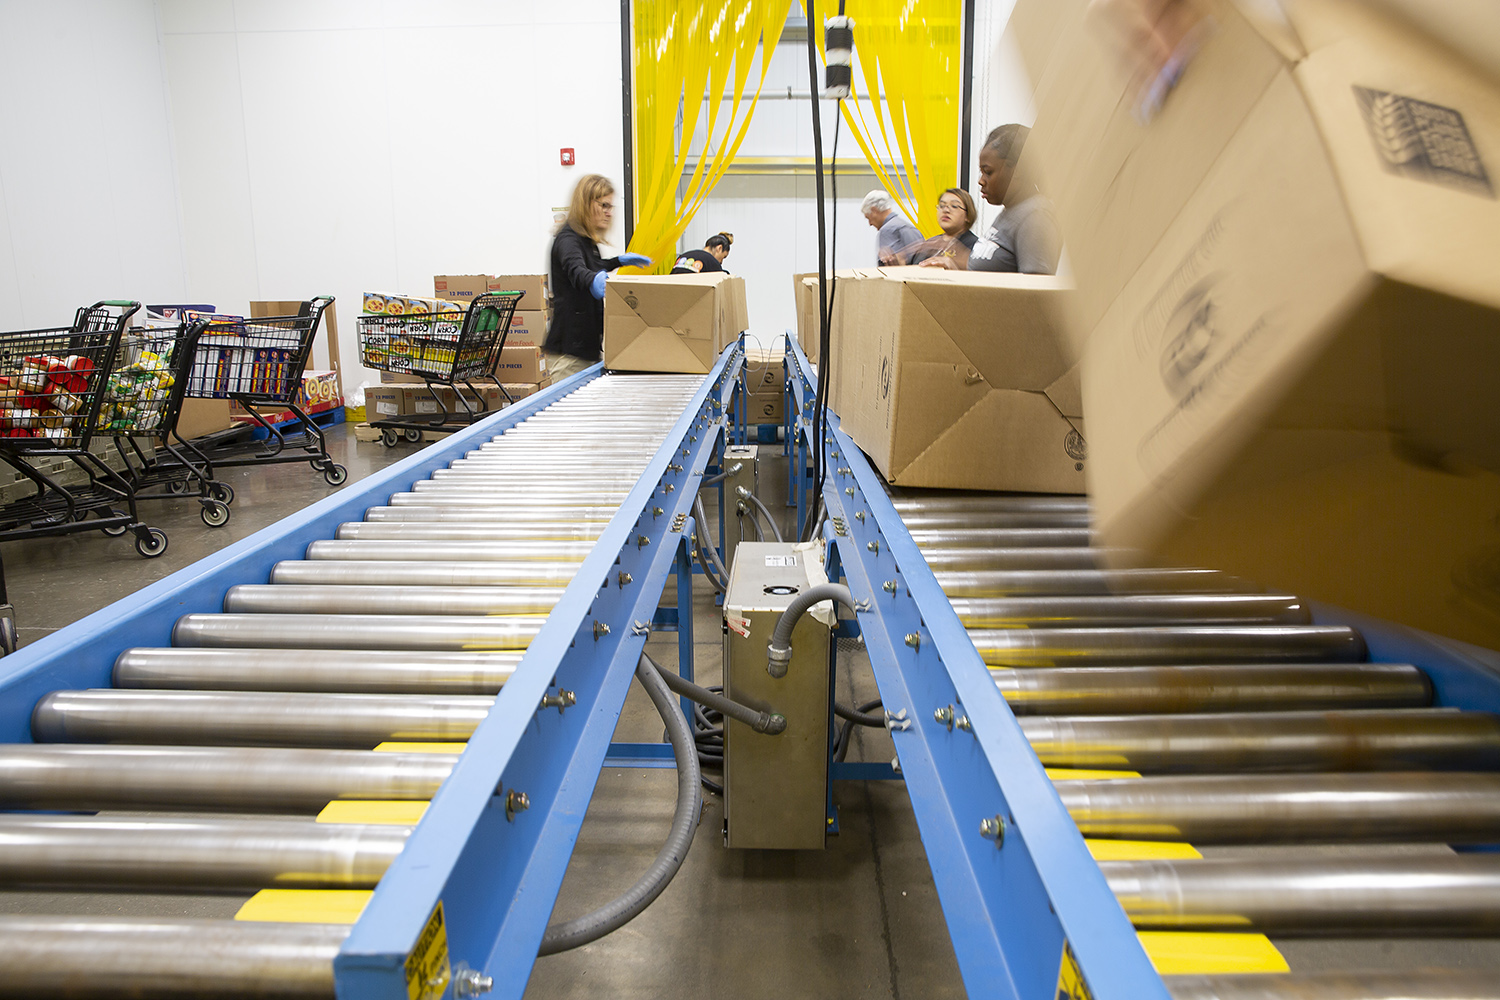 New conveyor belt system implemented at the South Plains Food Bank by mechanical engineering students at Texas Tech.